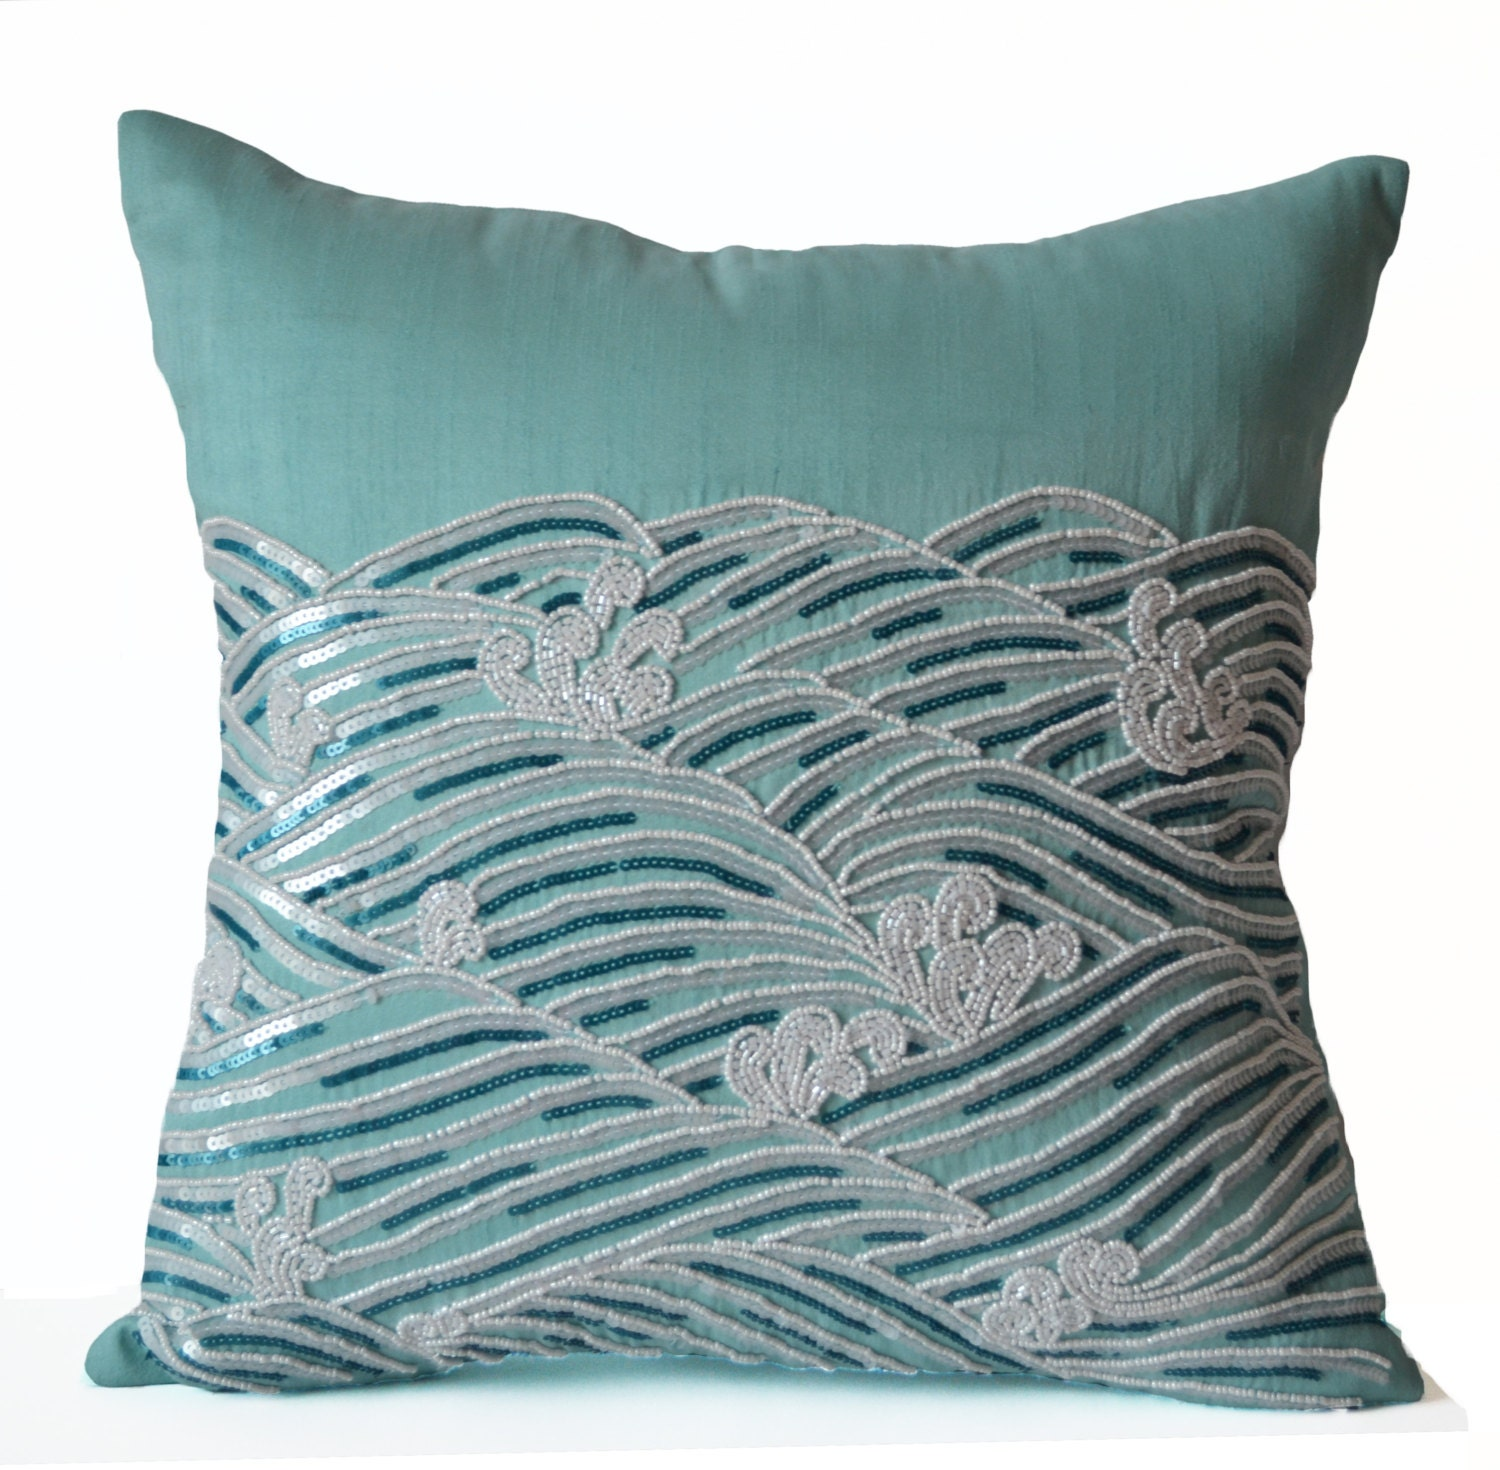 Images For Decorative Pillows : Decorative Pillow Cover Teal Throw Pillows Sequin Accent